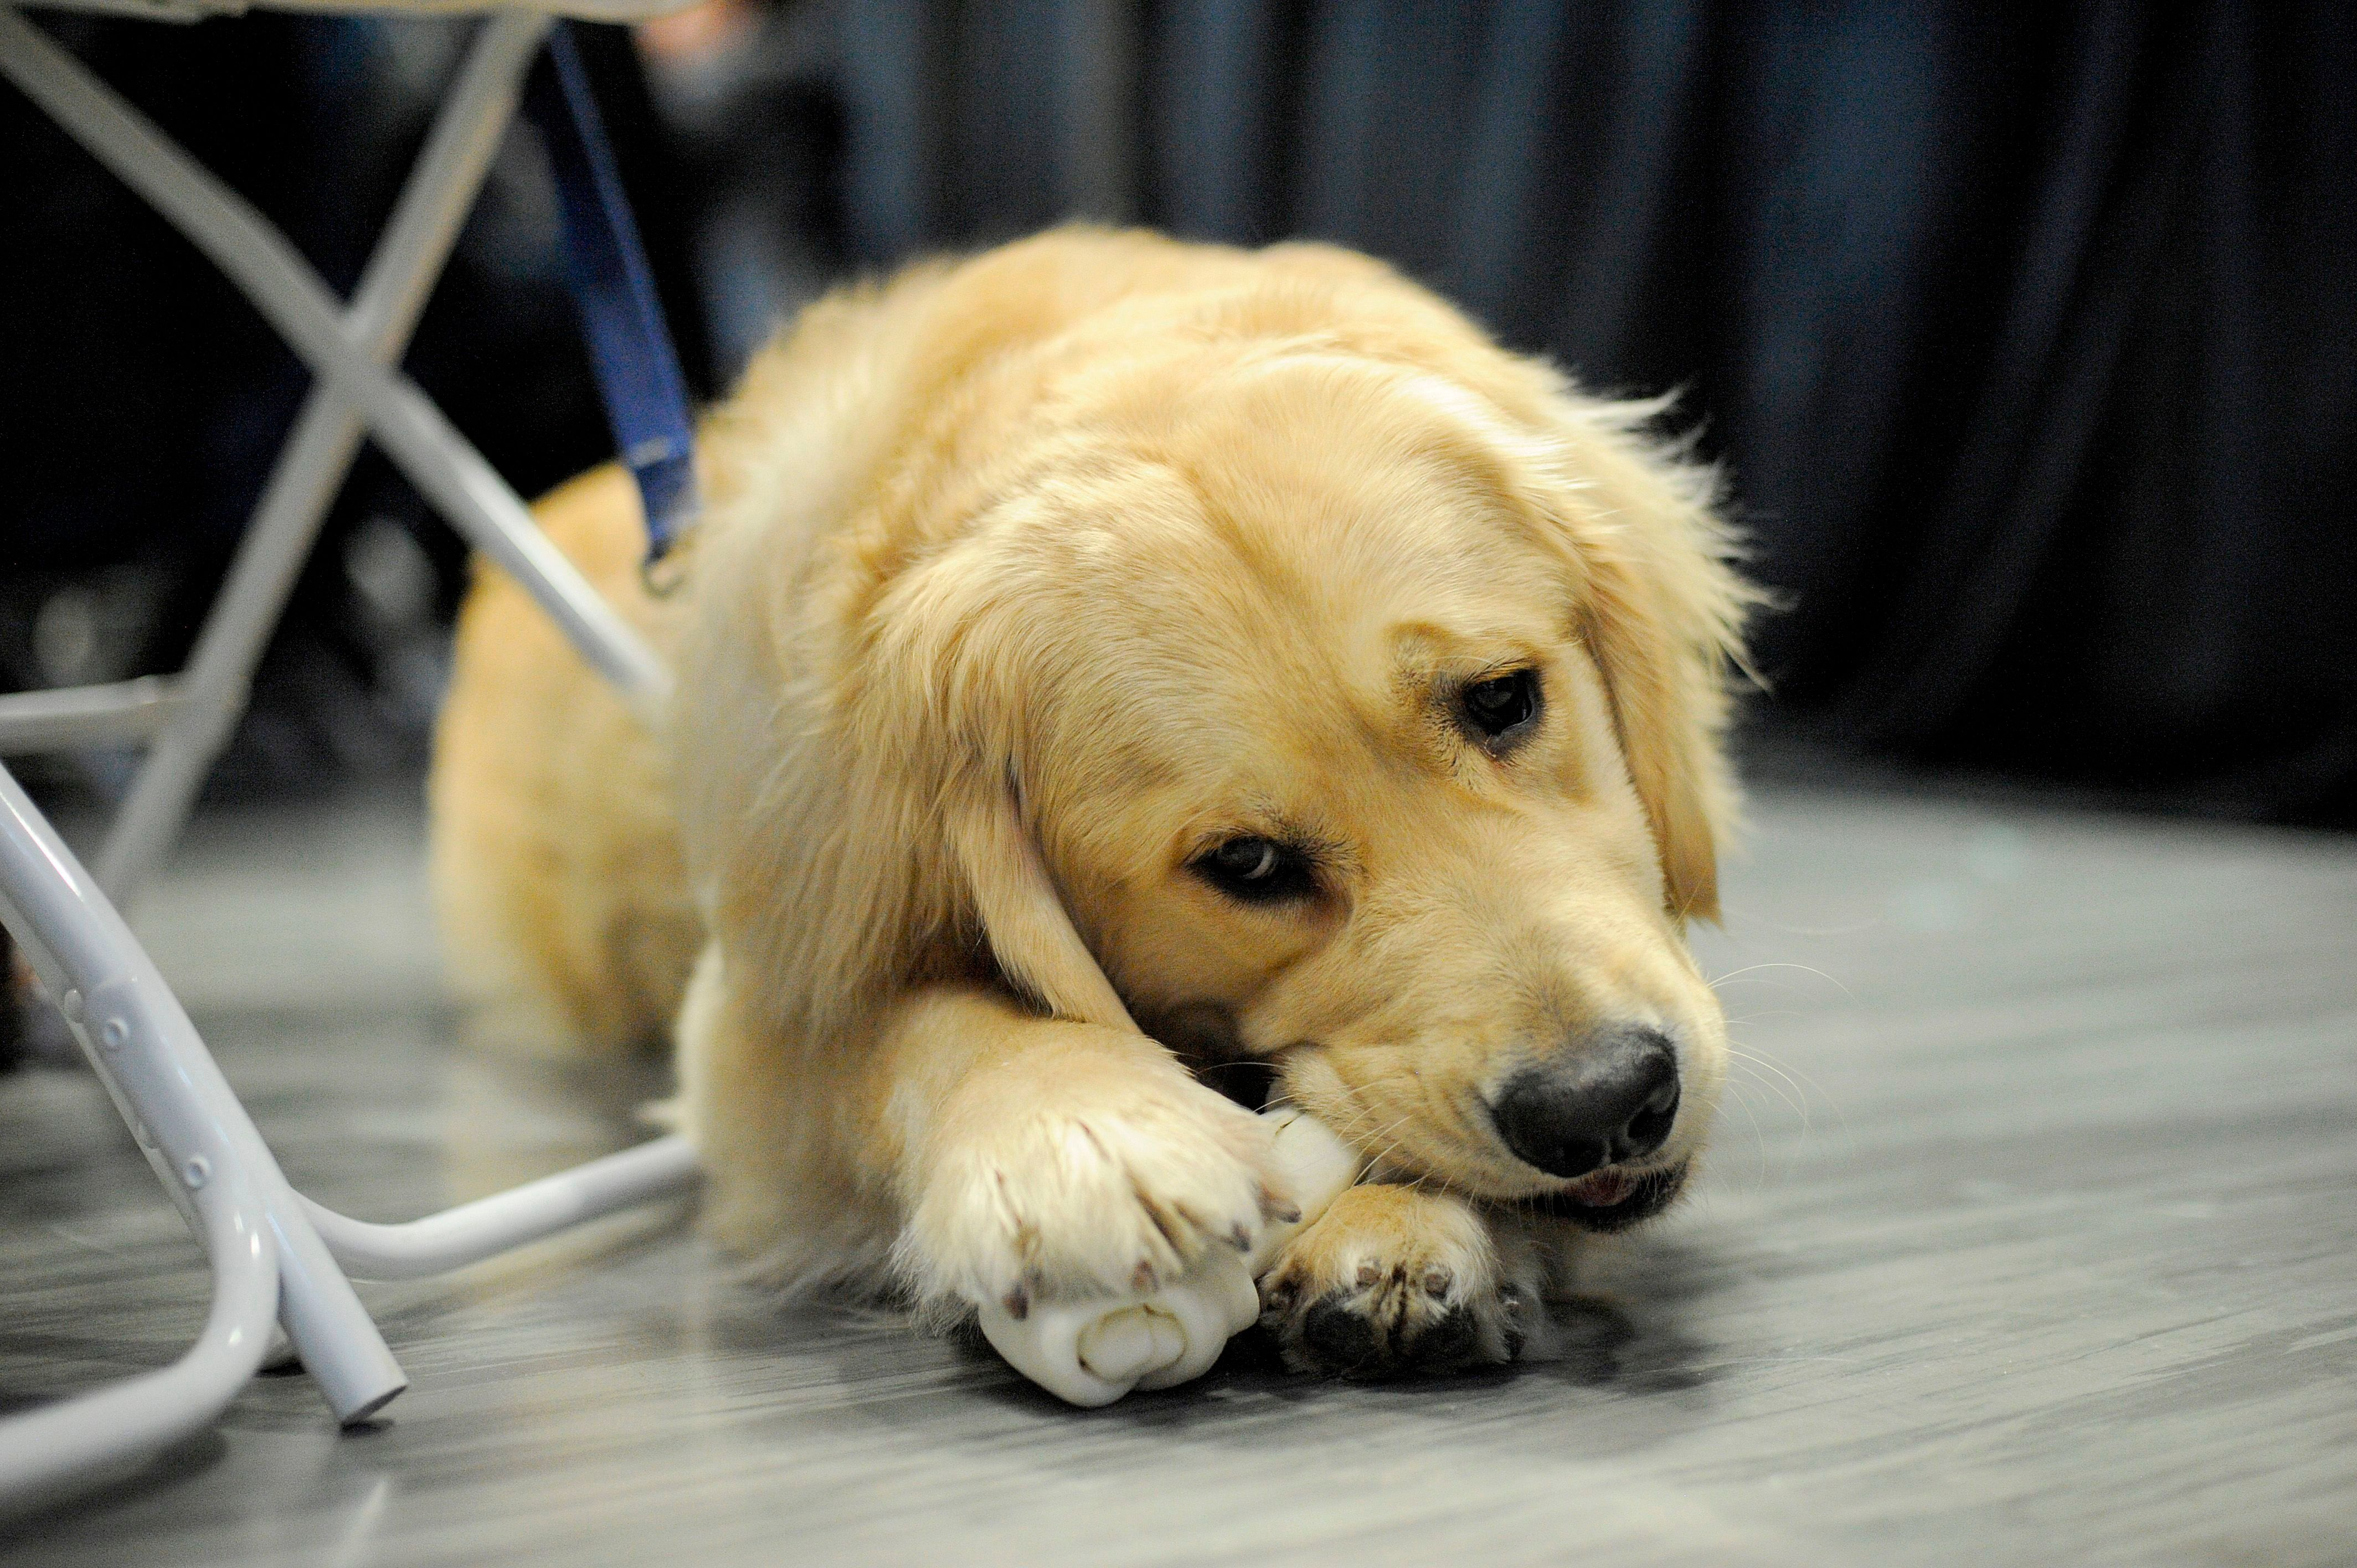 Senator Elizabeth Warren's pet dog Bailey sits and enjoys a treat as Warren addresses an Organizing Event as part of her exploratory presidential Committee at Manchester Community College in Manchester, NH on Saturday January 12, 2019. - The 69-year-old progressive announced last month she was launching an exploratory committee for president, becoming the first major candidate in what is set to be an extraordinarily crowded Democratic primary, united by a singular focus on unseating the Republican Trump. (Photo by JOSEPH PREZIOSO / AFP)        (Photo credit should read JOSEPH PREZIOSO/AFP/Getty Images)